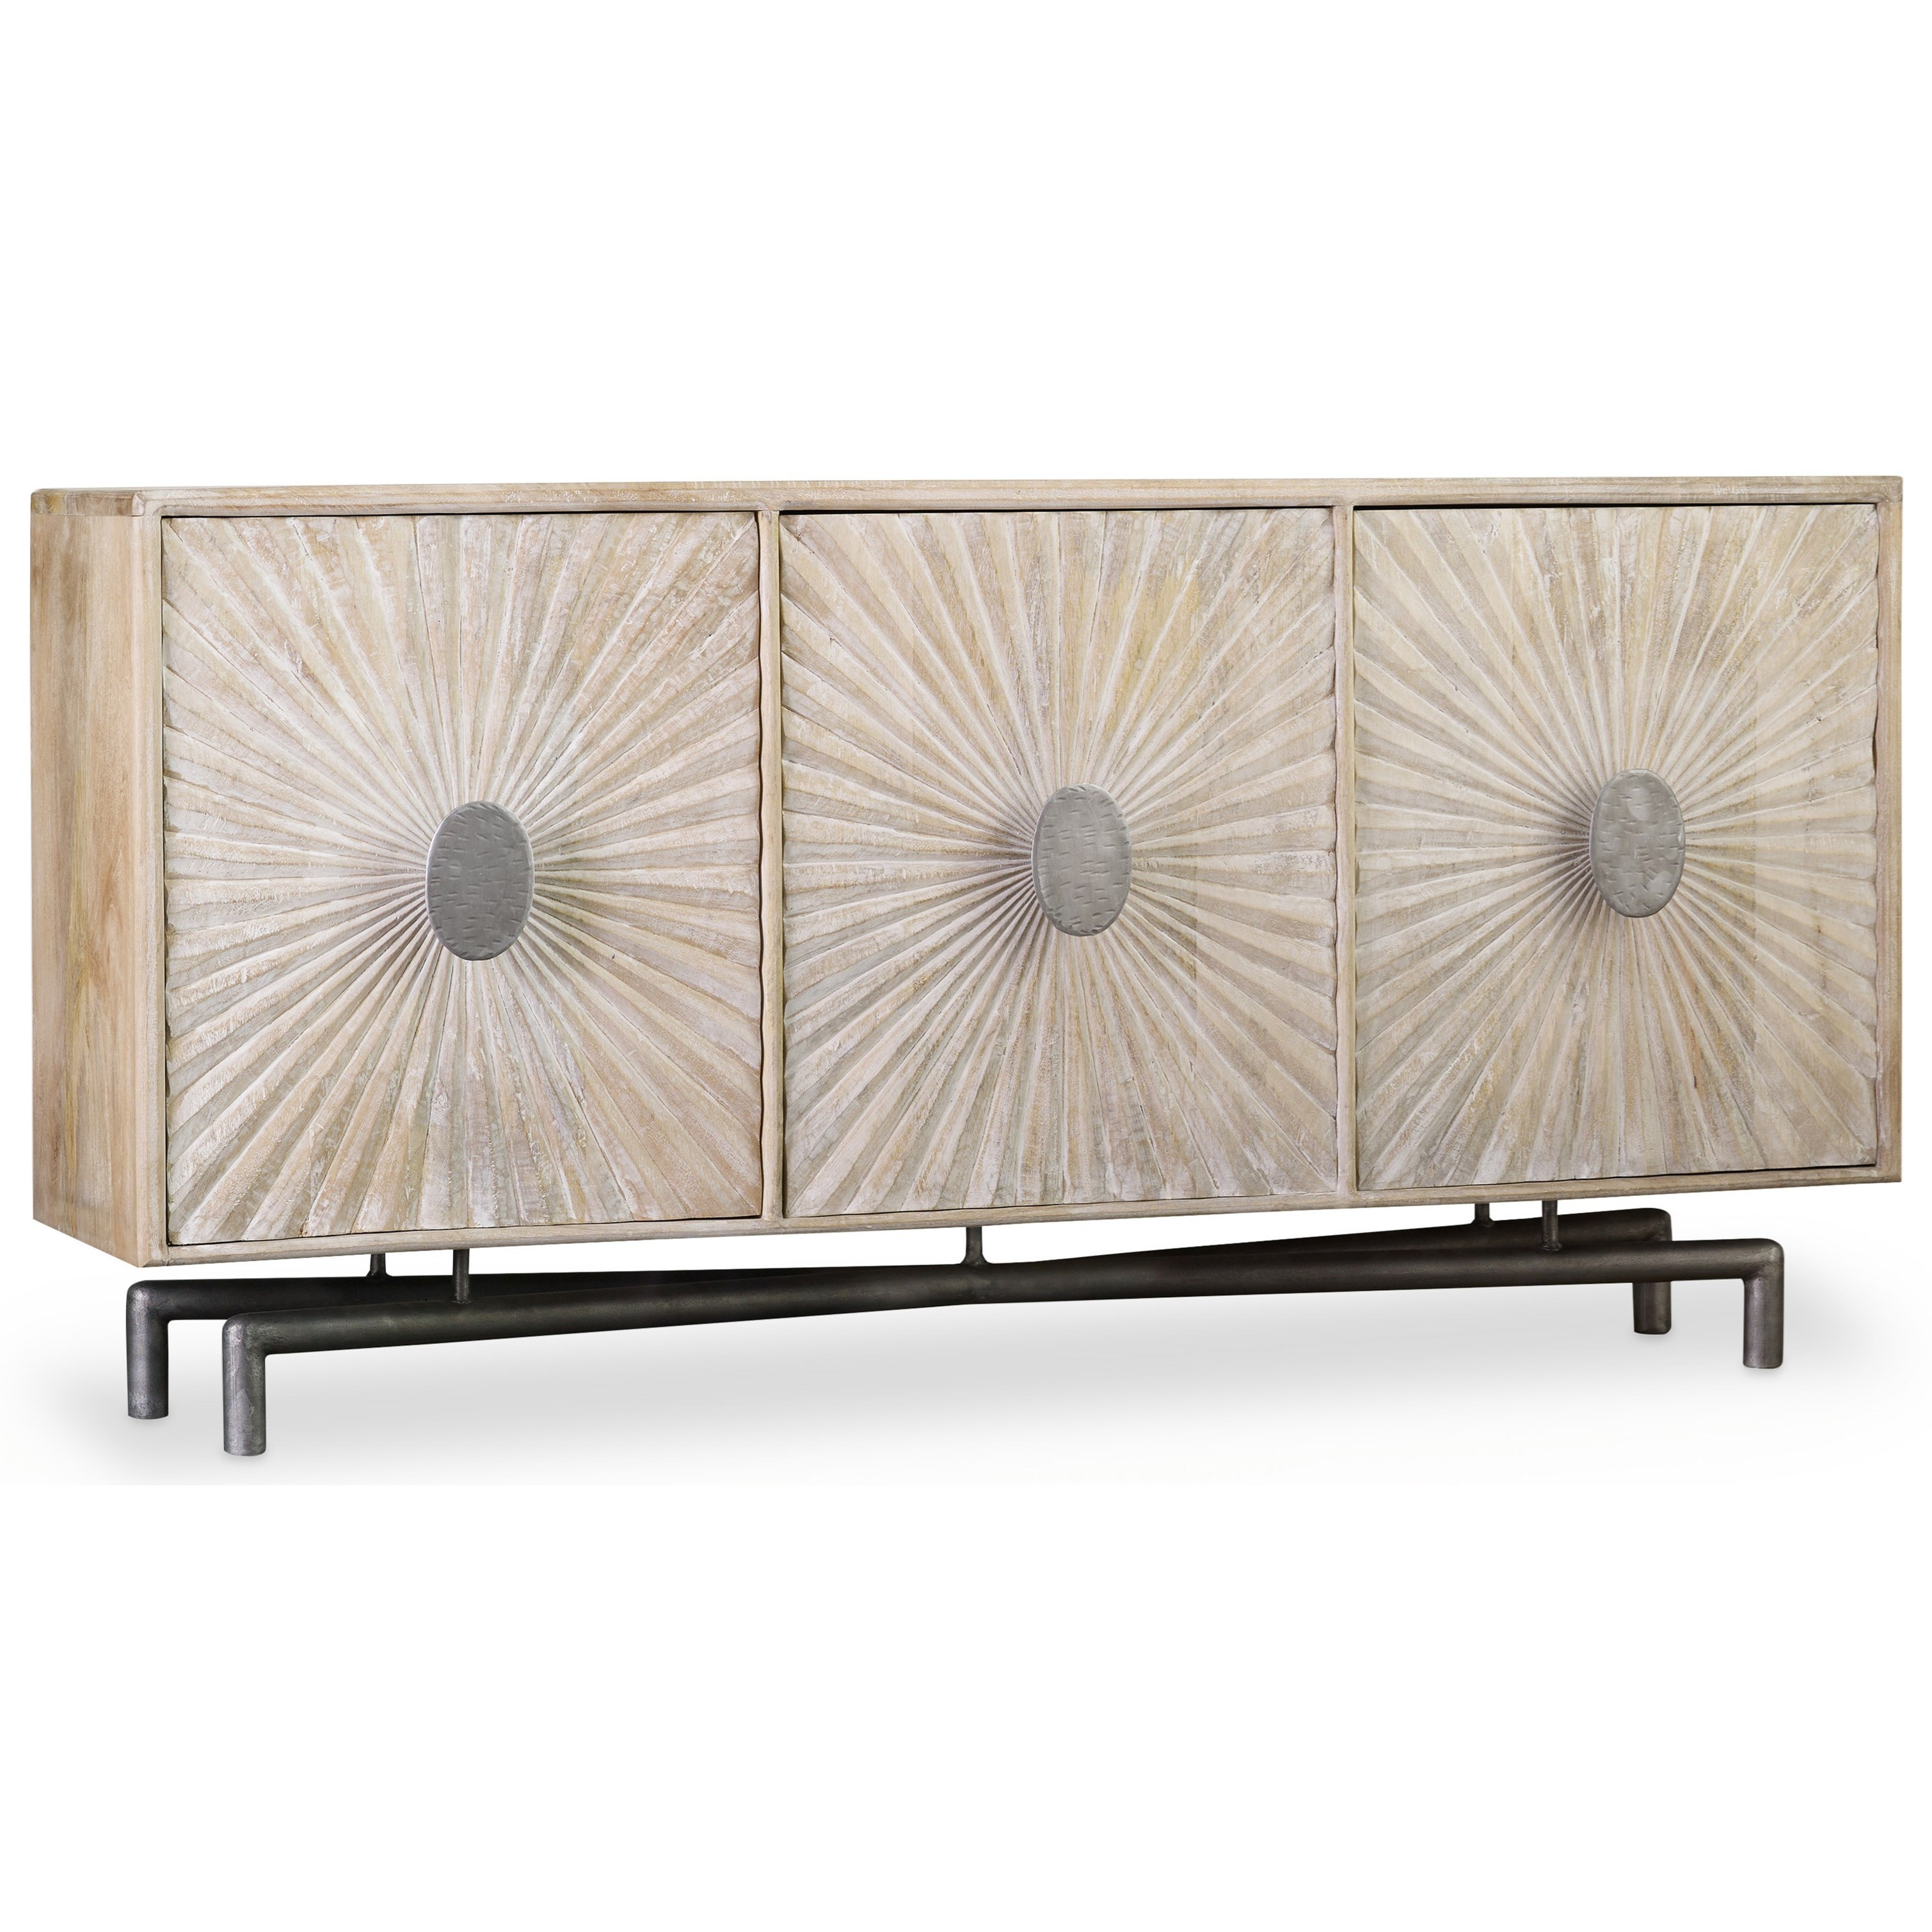 Living Room Accents 68 Inch Entertainment Console by Hooker Furniture at Zak's Home